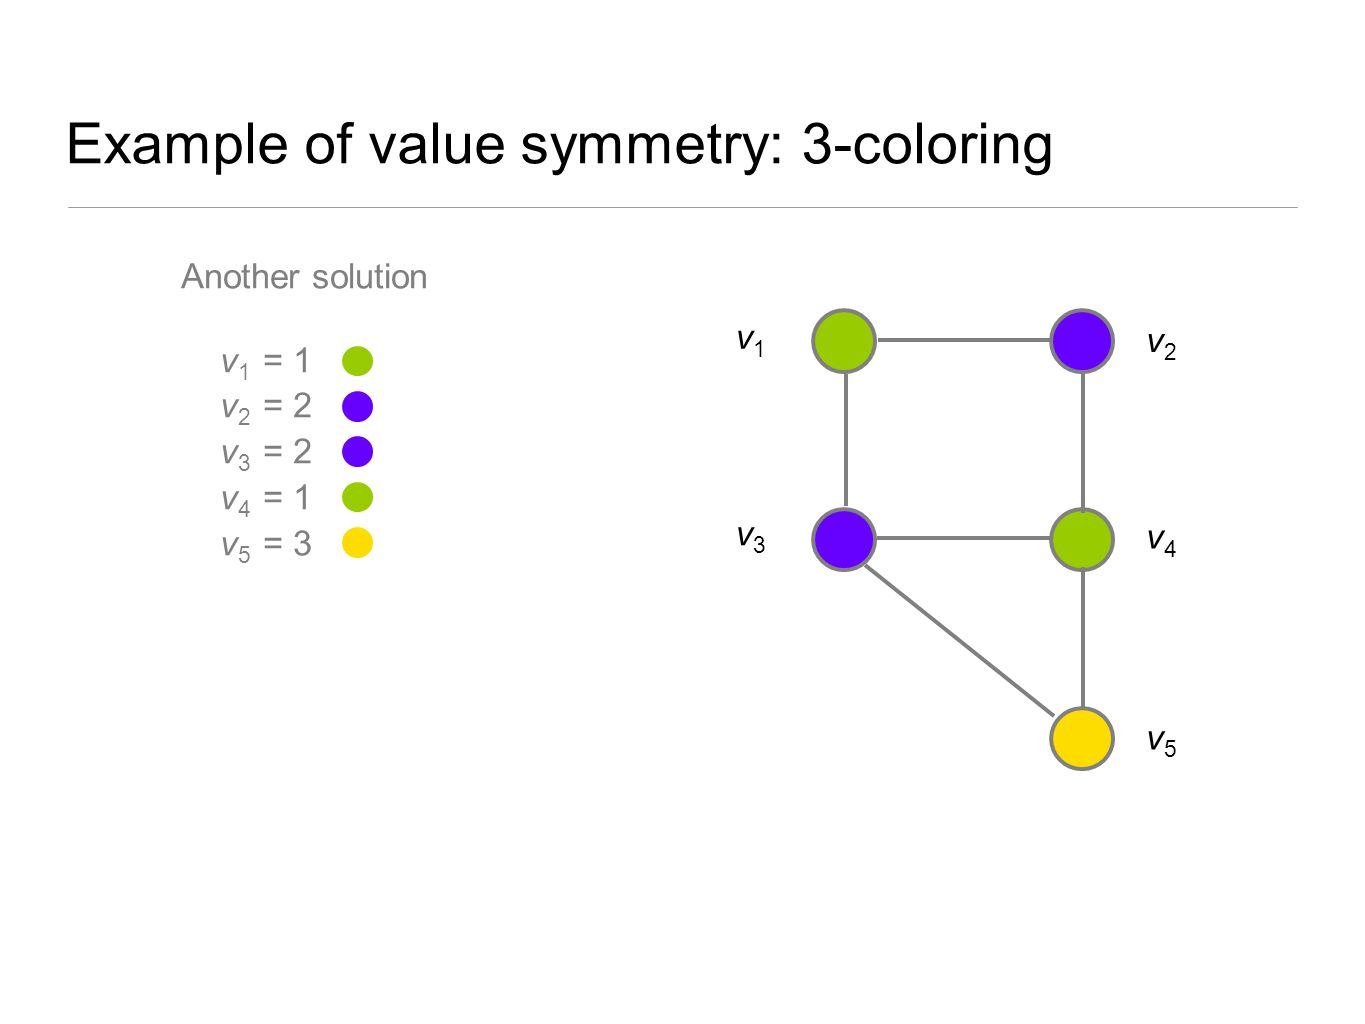 Example of value symmetry: 3-coloring Another solution v 1 = 1 v 2 = 2 v 3 = 2 v 4 = 1 v 5 = 3 v2v2 v3v3 v1v1 v5v5 v4v4